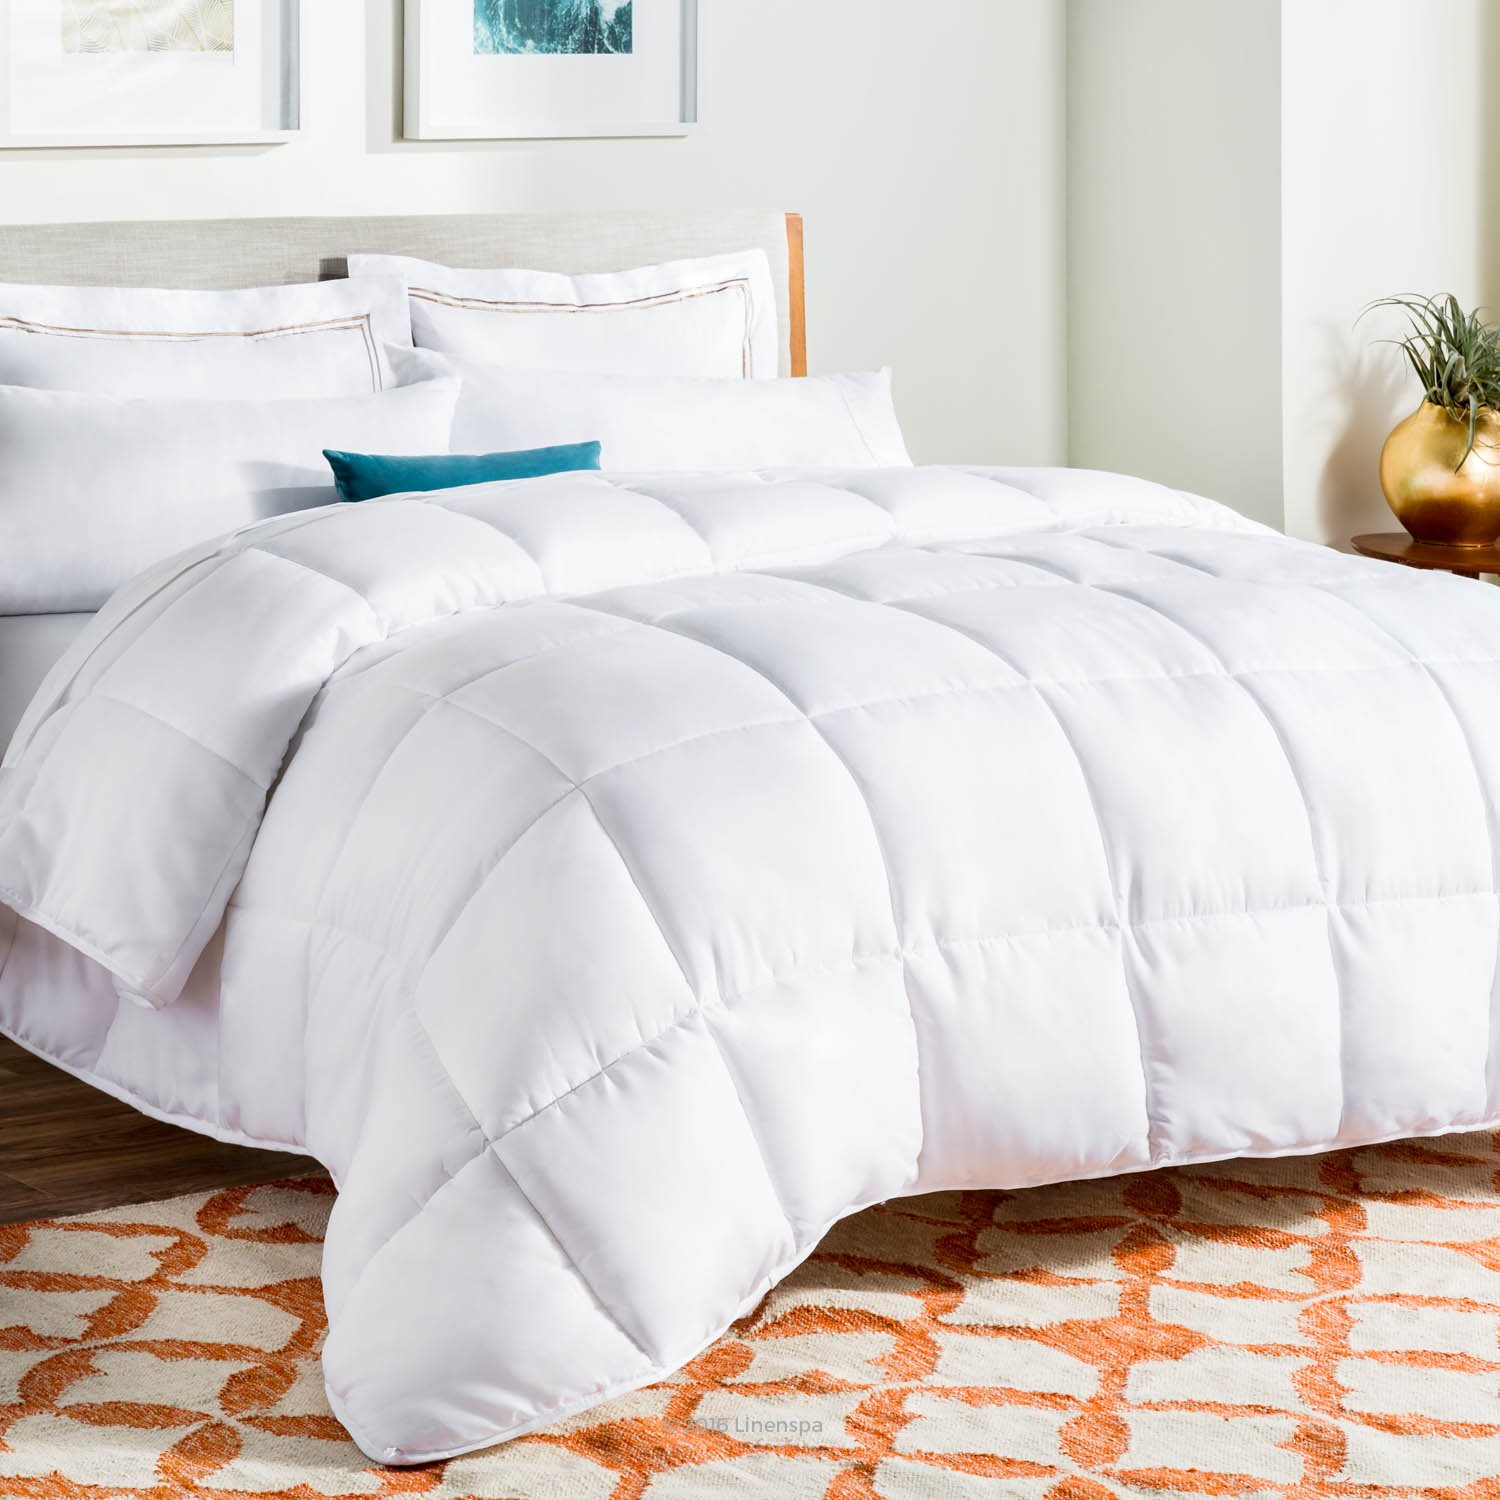 Best Duvet Covers For Night Sweats 2021 Ten Reviewed Reviews